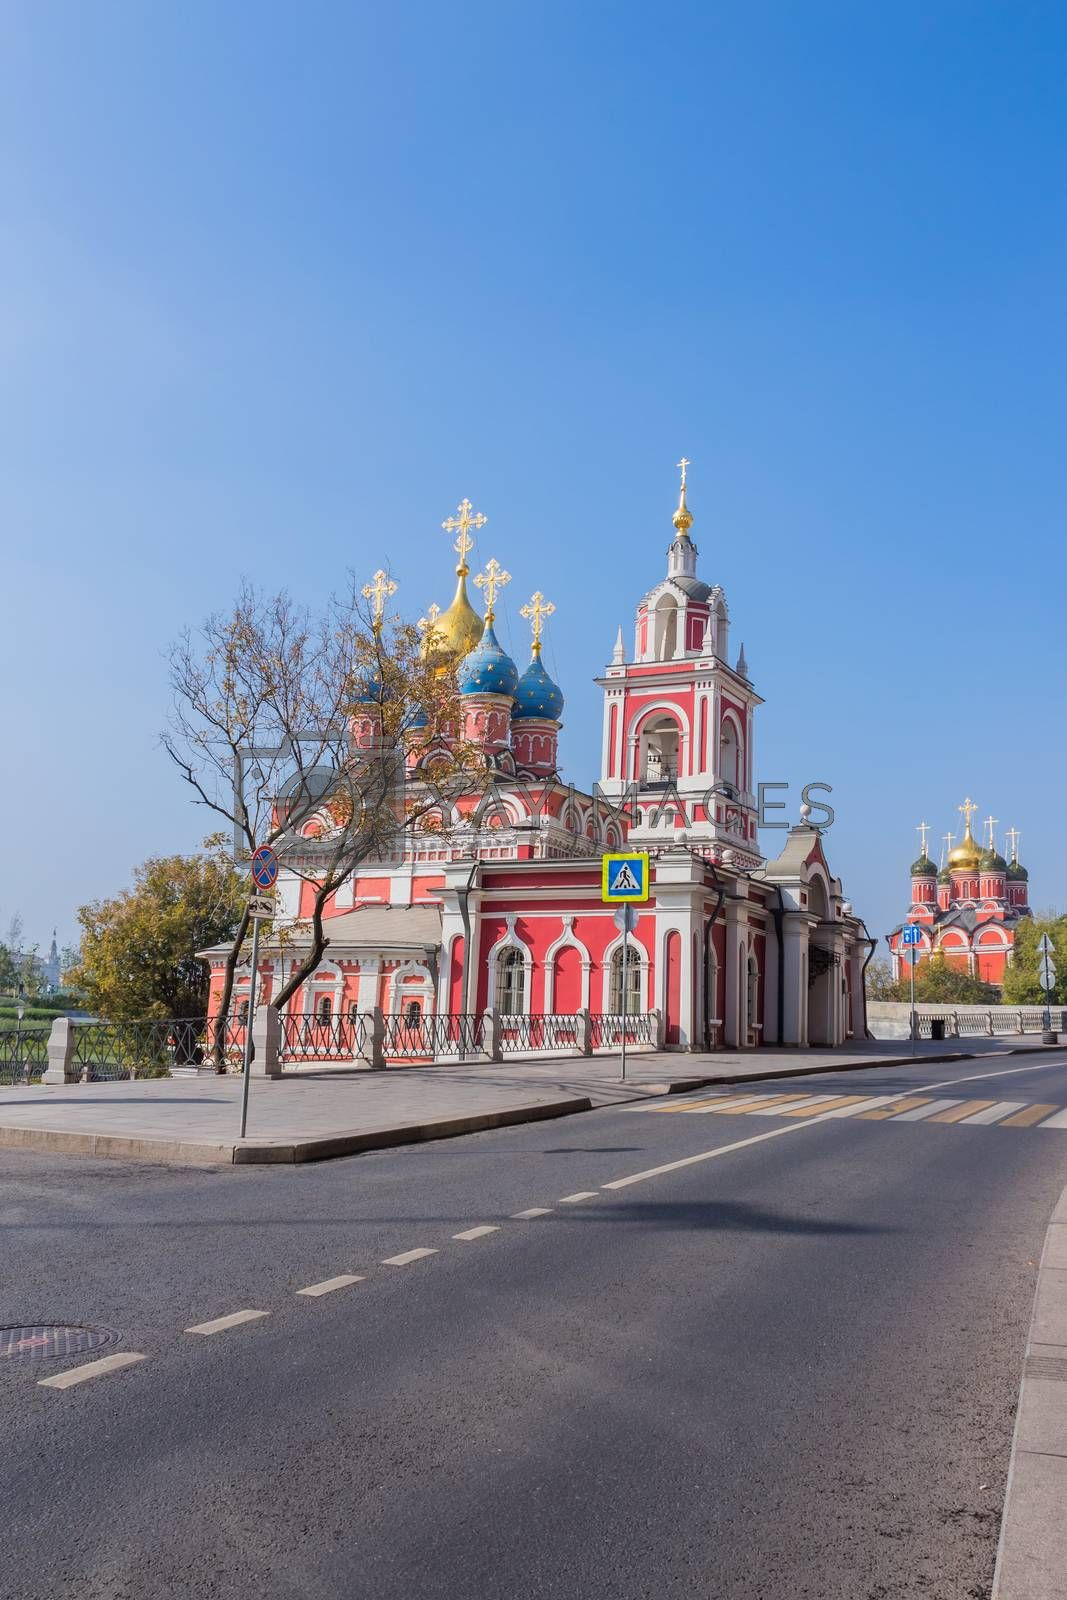 Church of St George (the Protection of the Blessed Virgin) on the Pskov mountain on Varvarka street in center of Moscow city